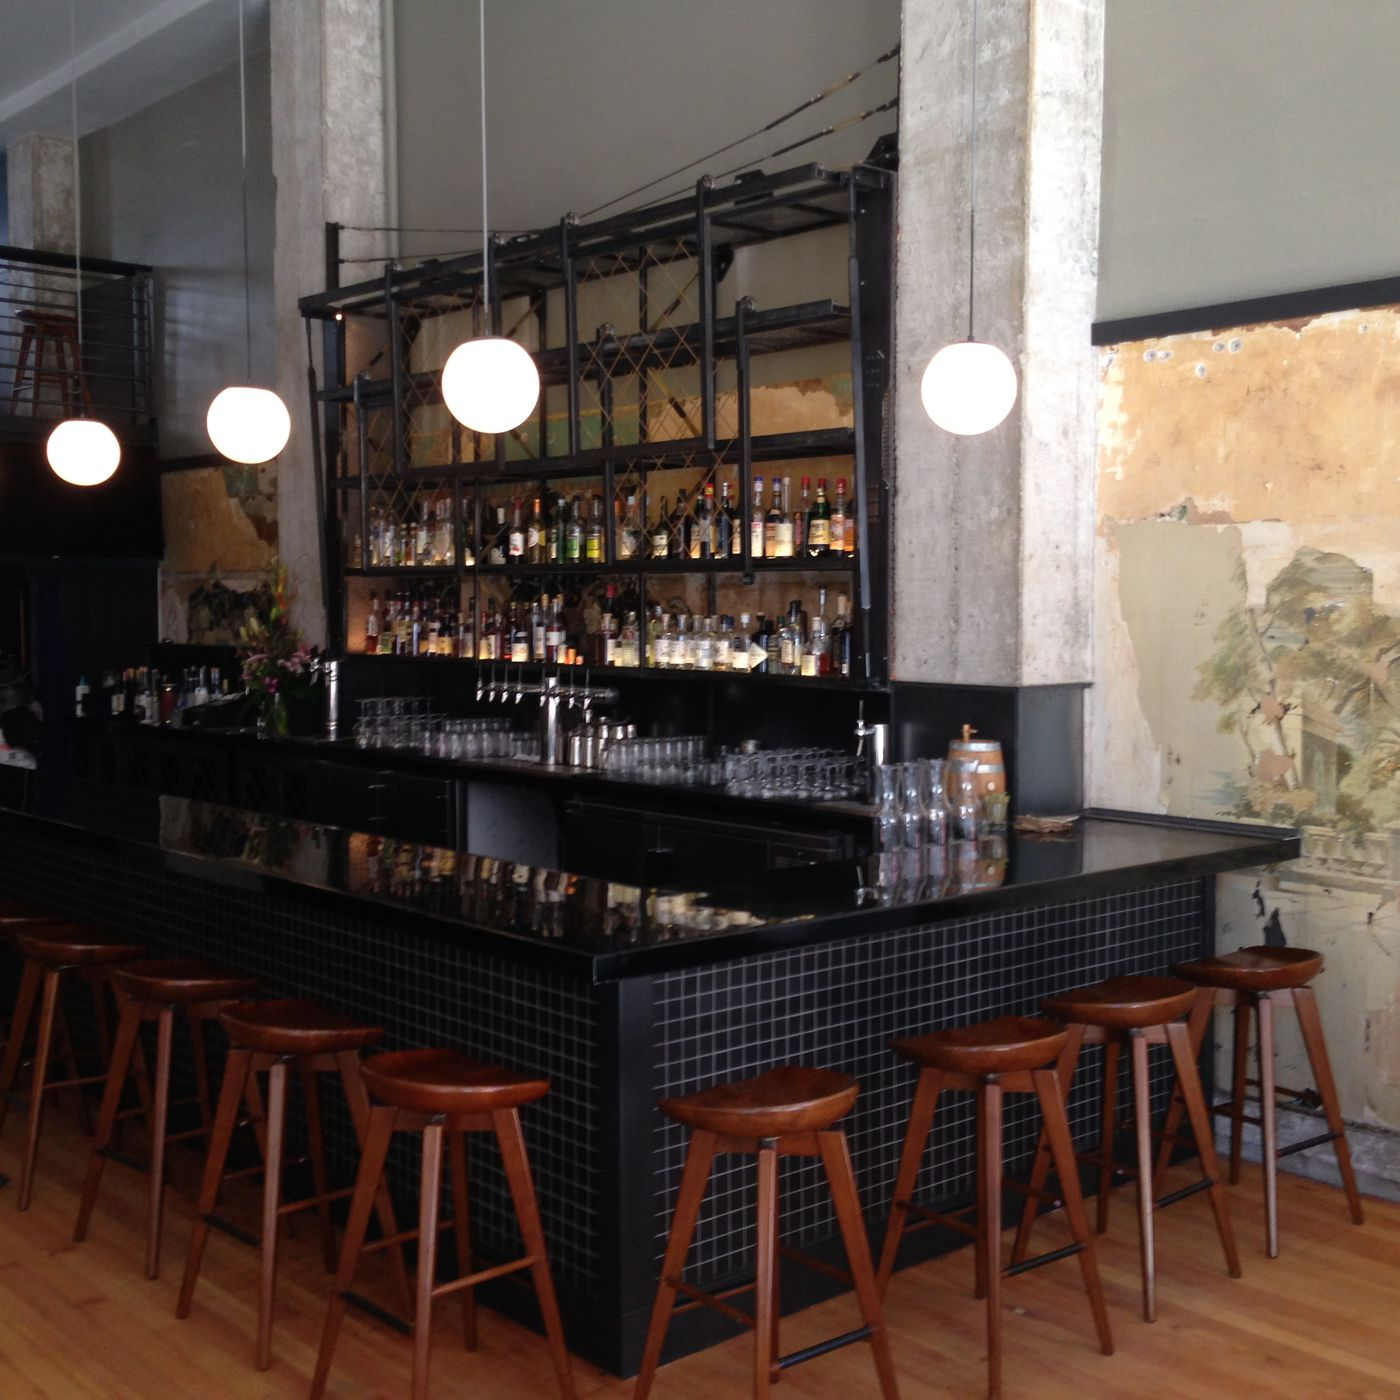 Drexl, Booze and Skee Ball in Uptown Oakland - Eater SF